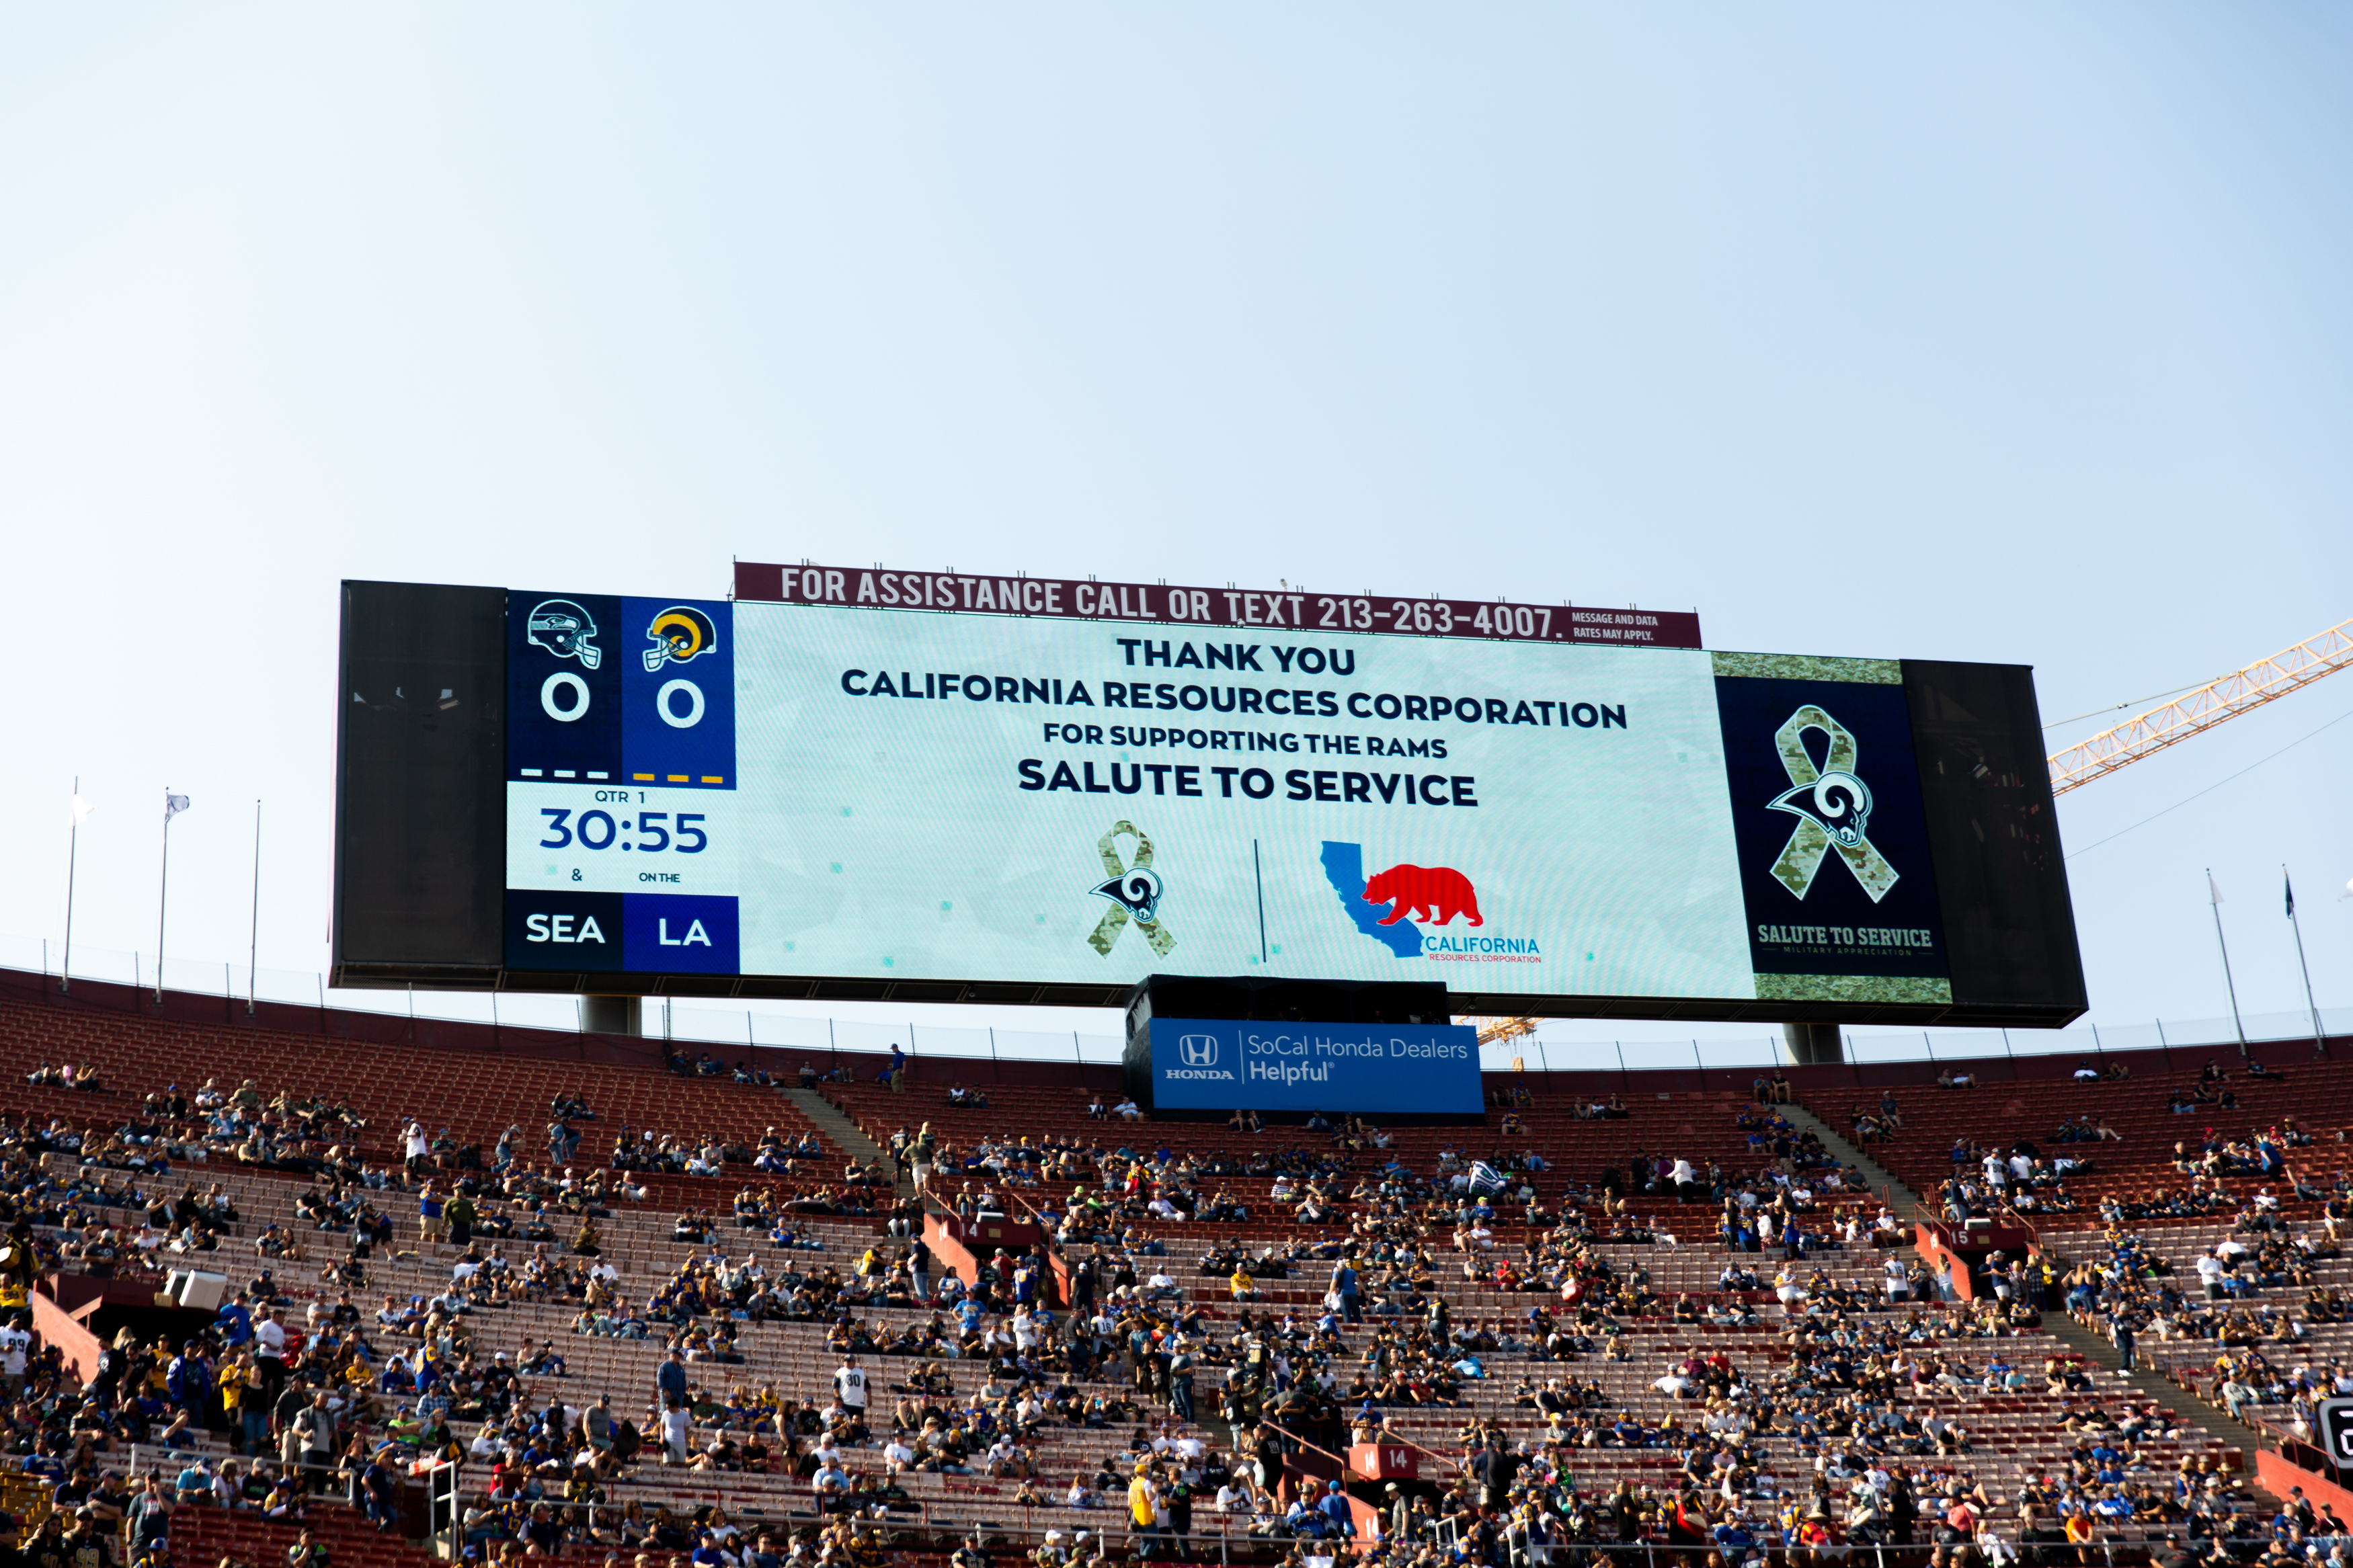 The LA Rams thank CRC for supporting veterans